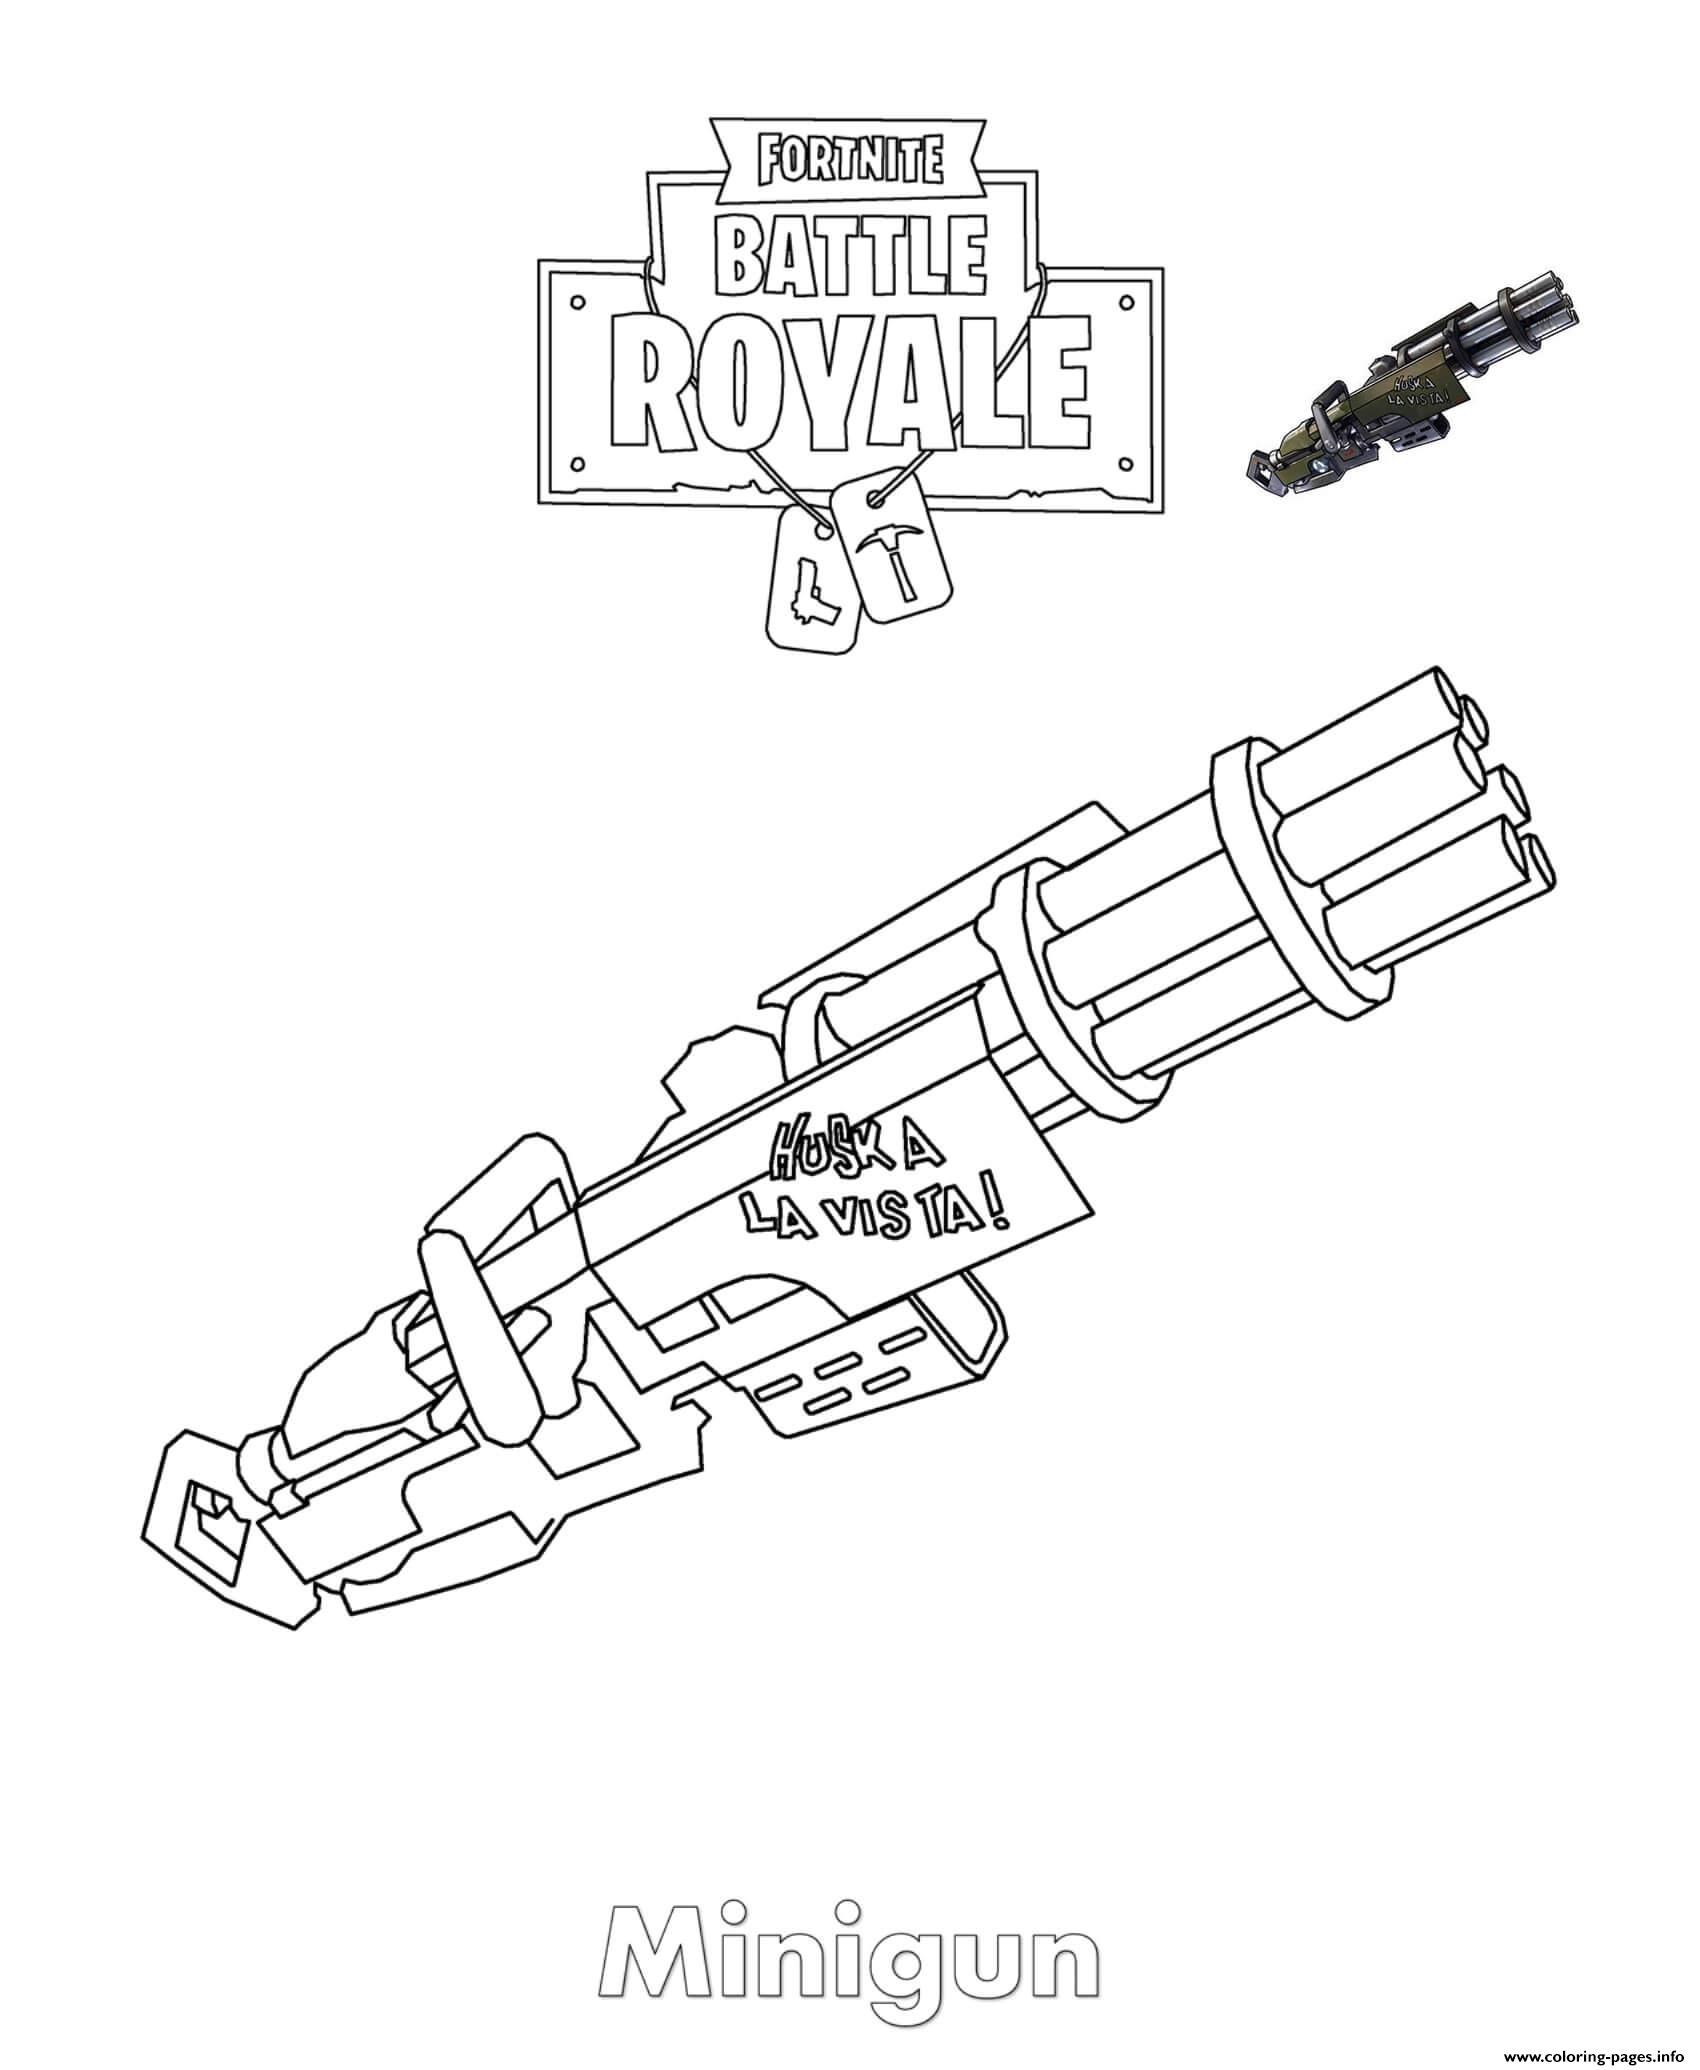 Minigun Fortnite Coloring Pages Printable